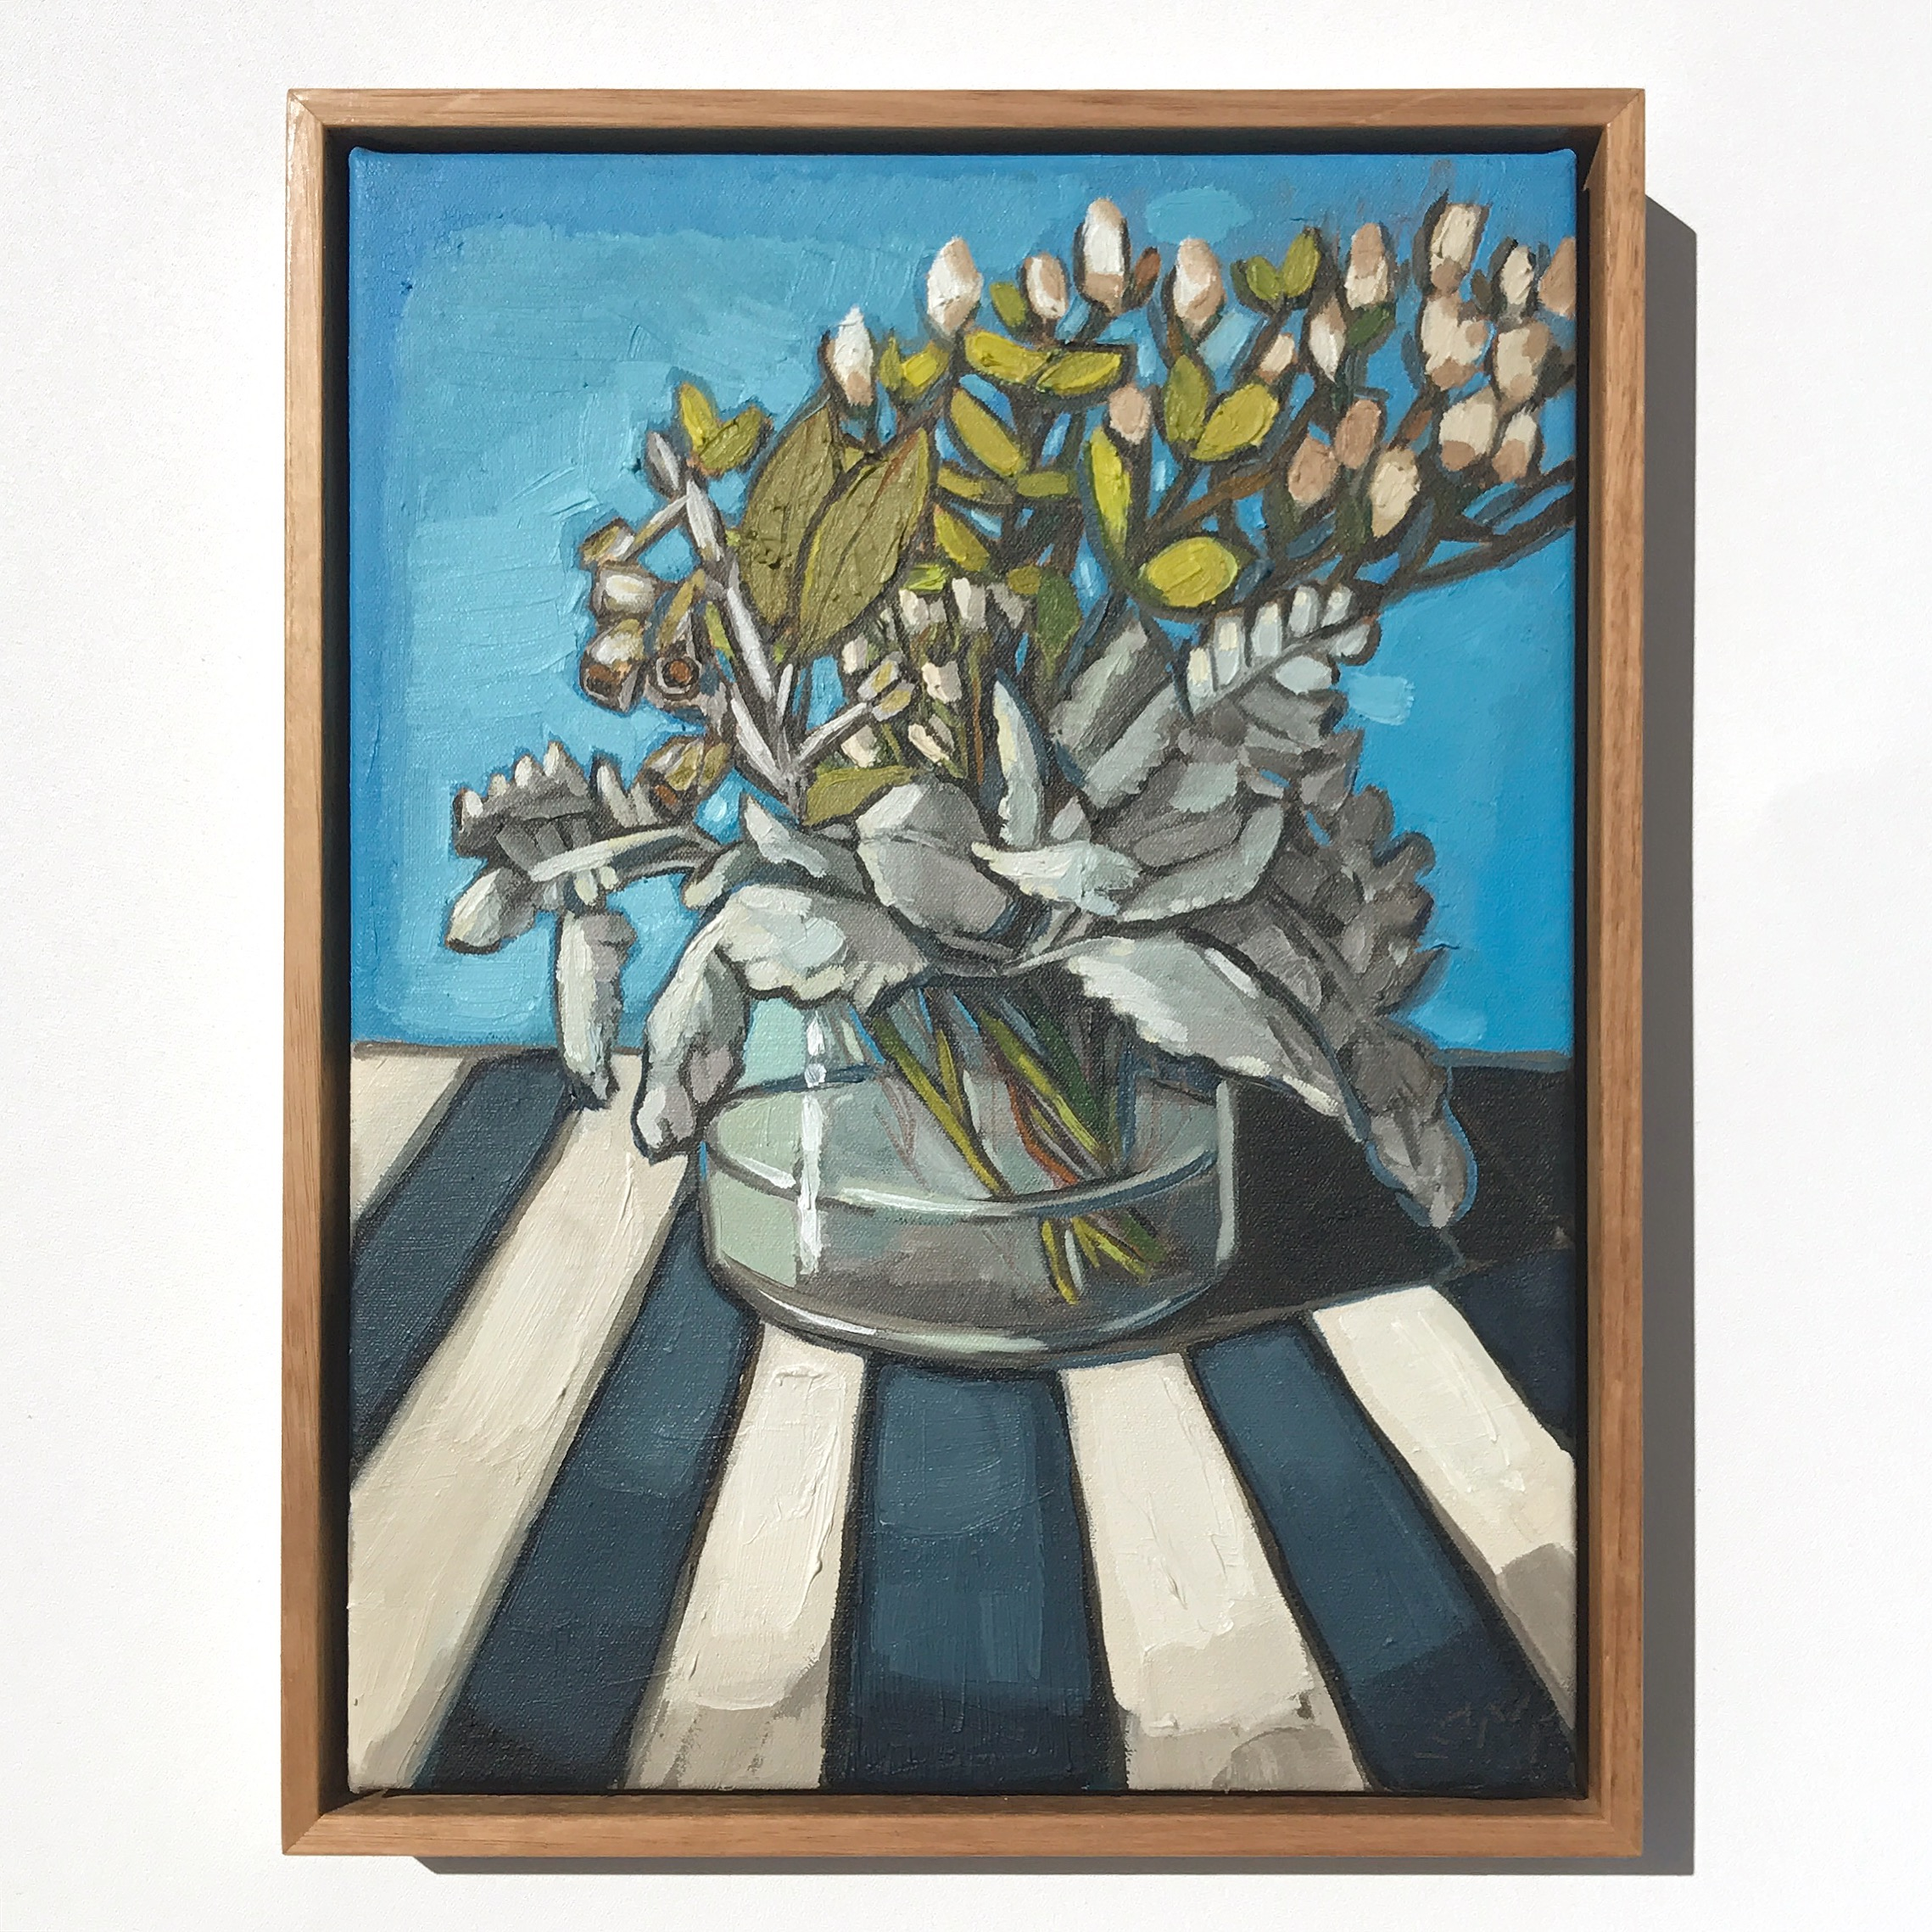 12_17 EMPEREUR 'Lambs Ears & Stripes' 43x33cm $1,095